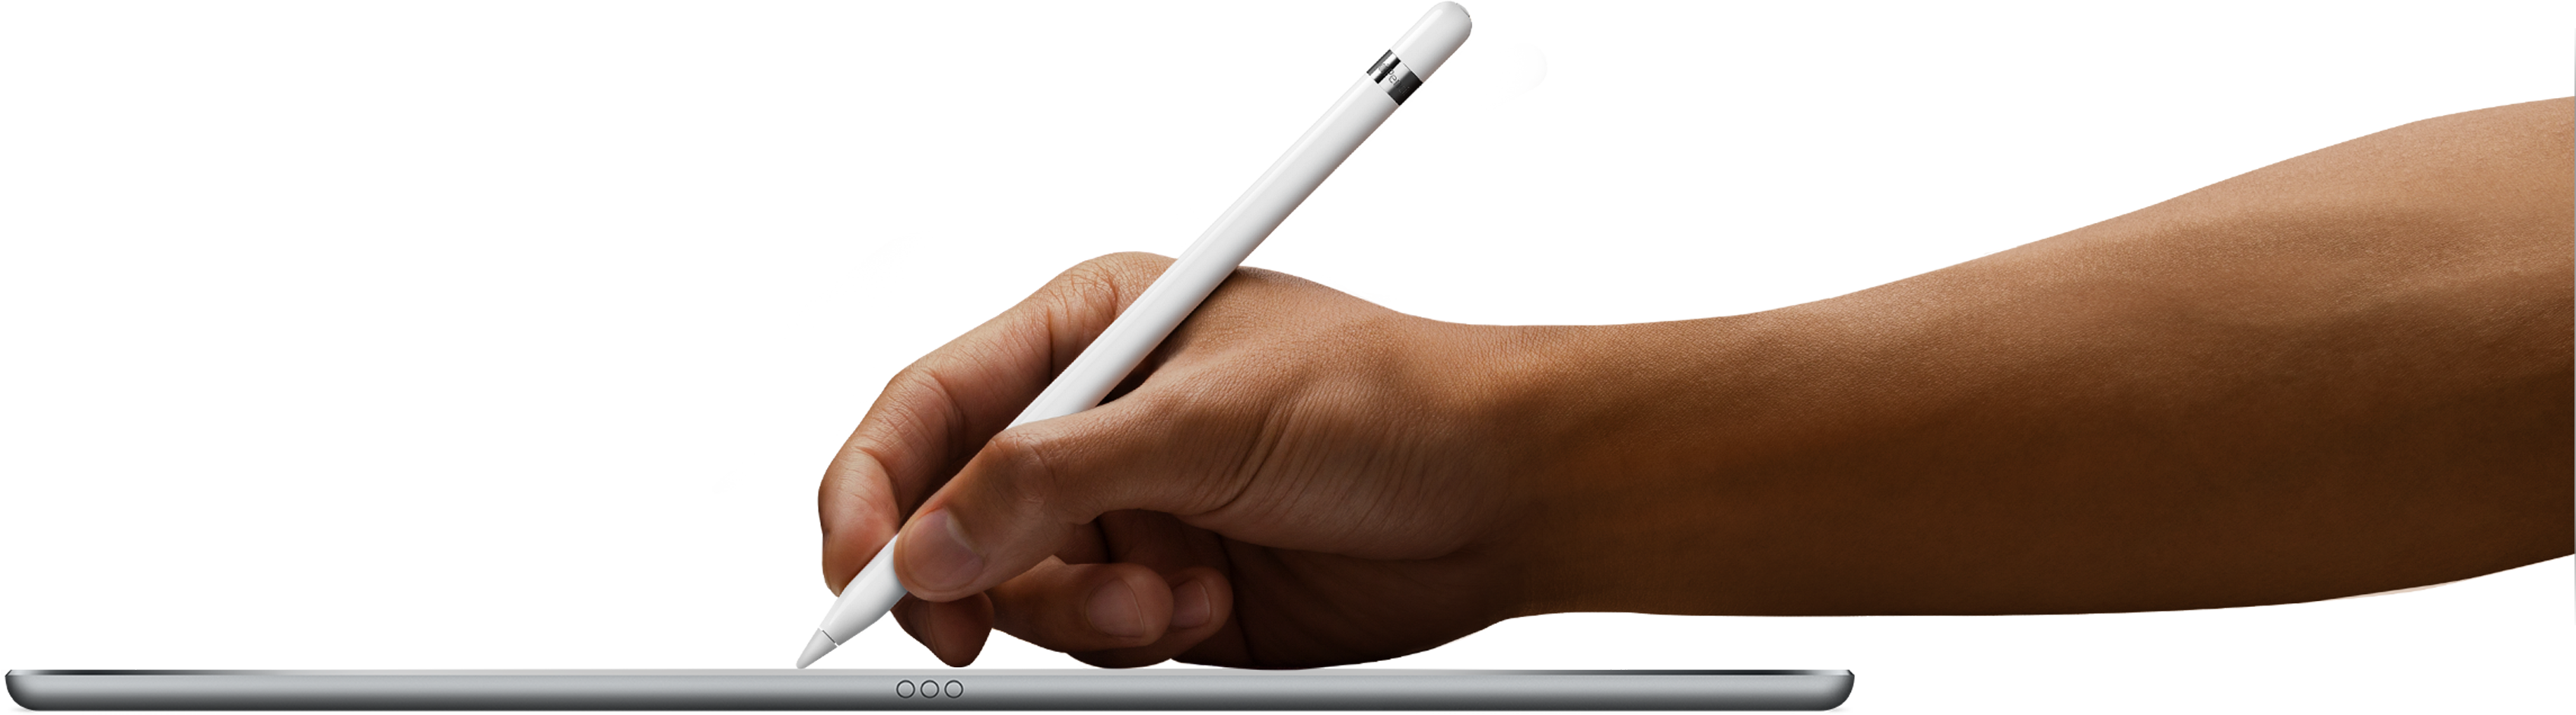 Drawing apple pen. Will bring back ui